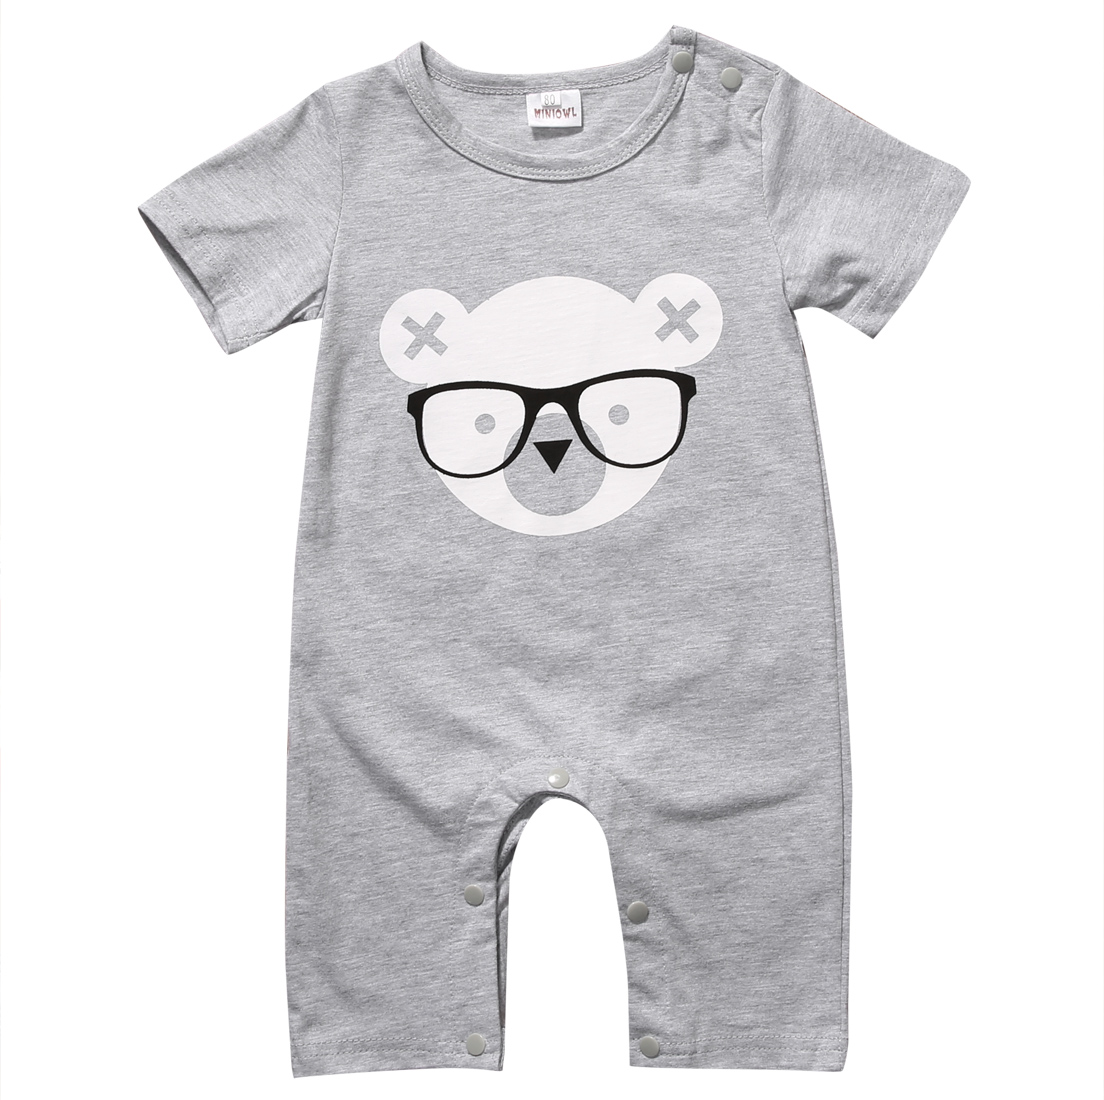 Newborn Infant Baby Boy Girl Bear Jumpsuit Rompers 2017 Summer Baby Clothes Baby Boys Rompers Girls Rompers Outfits Cotton newborn infant baby girls boys rompers long sleeve cotton casual romper jumpsuit baby boy girl outfit costume